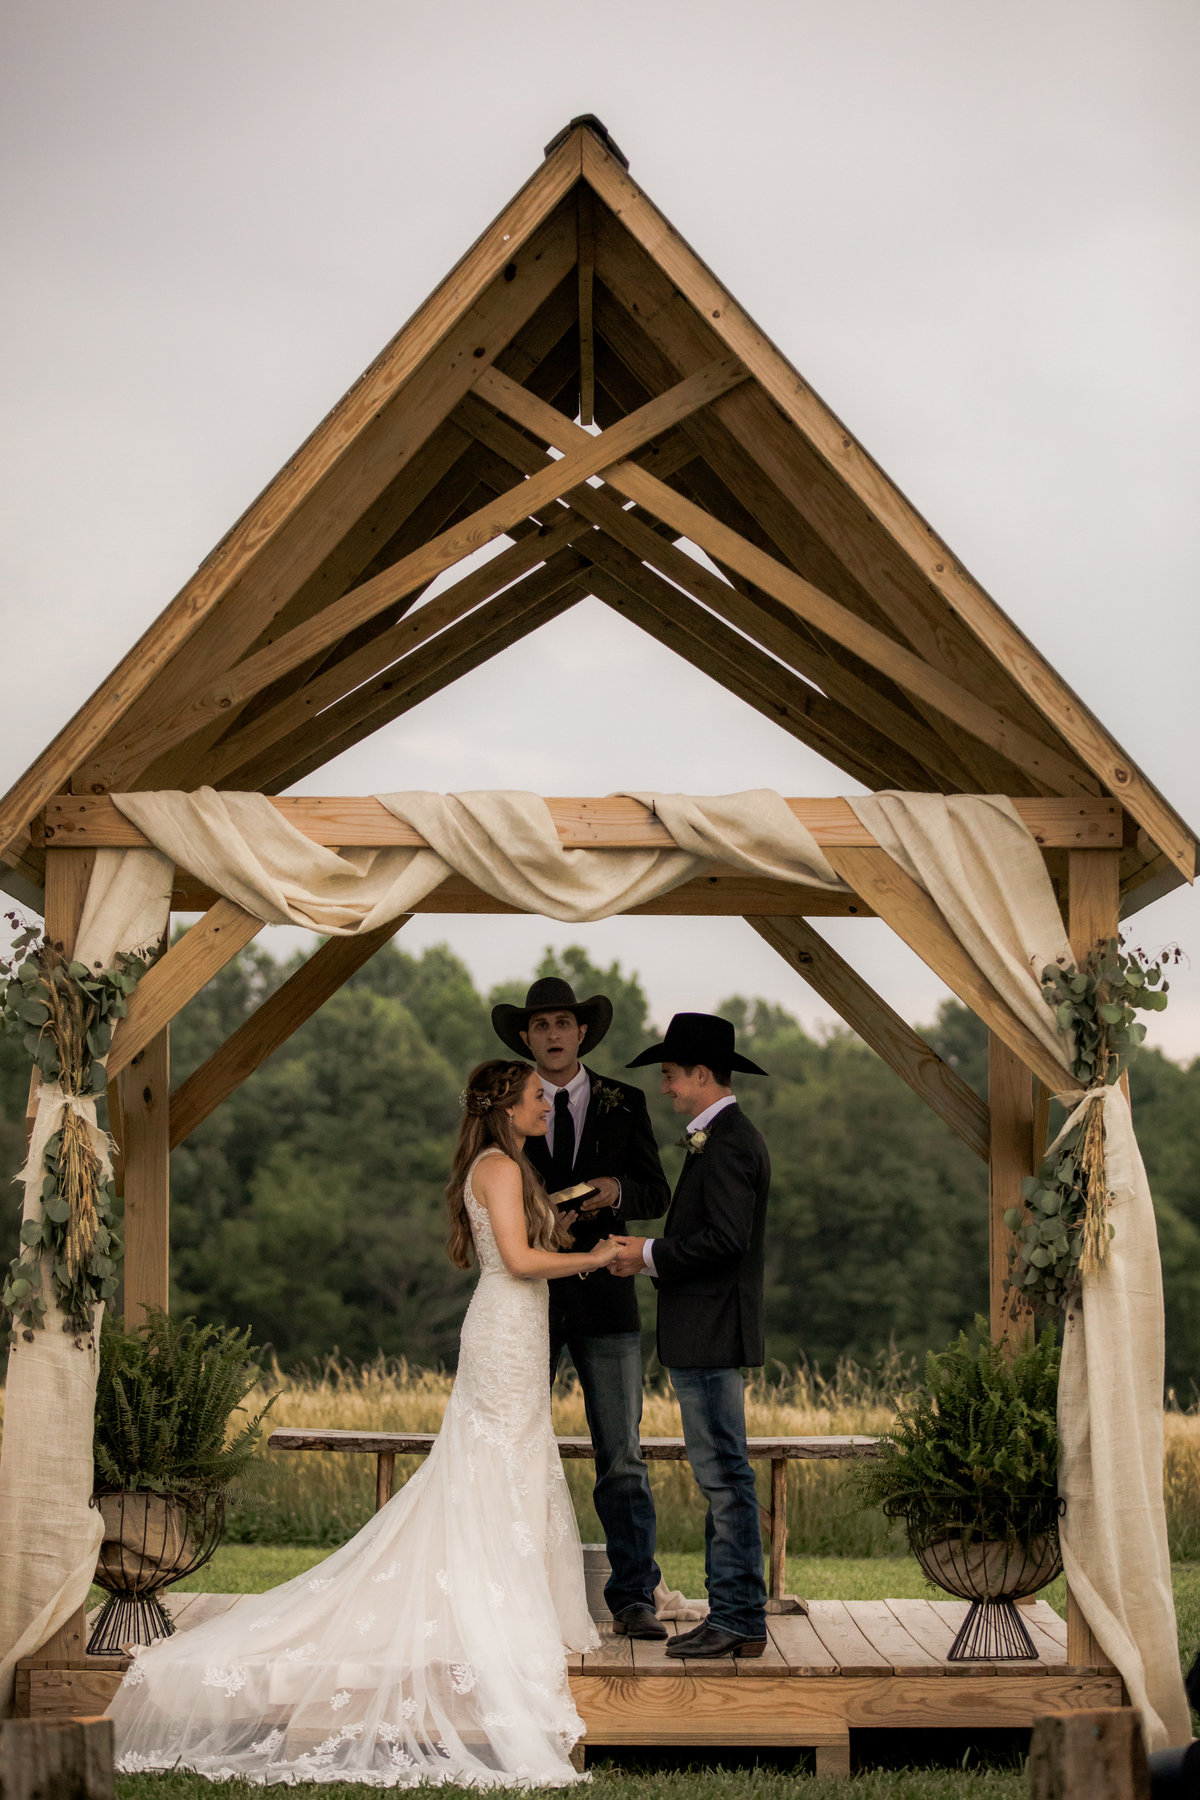 Nsshville Bride - Nashville Brides - The Hayloft Weddings - Tennessee Brides - Kentucky Brides - Southern Brides - Cowboys Wife - Cowboys Bride - Ranch Weddings - Cowboys and Belles096